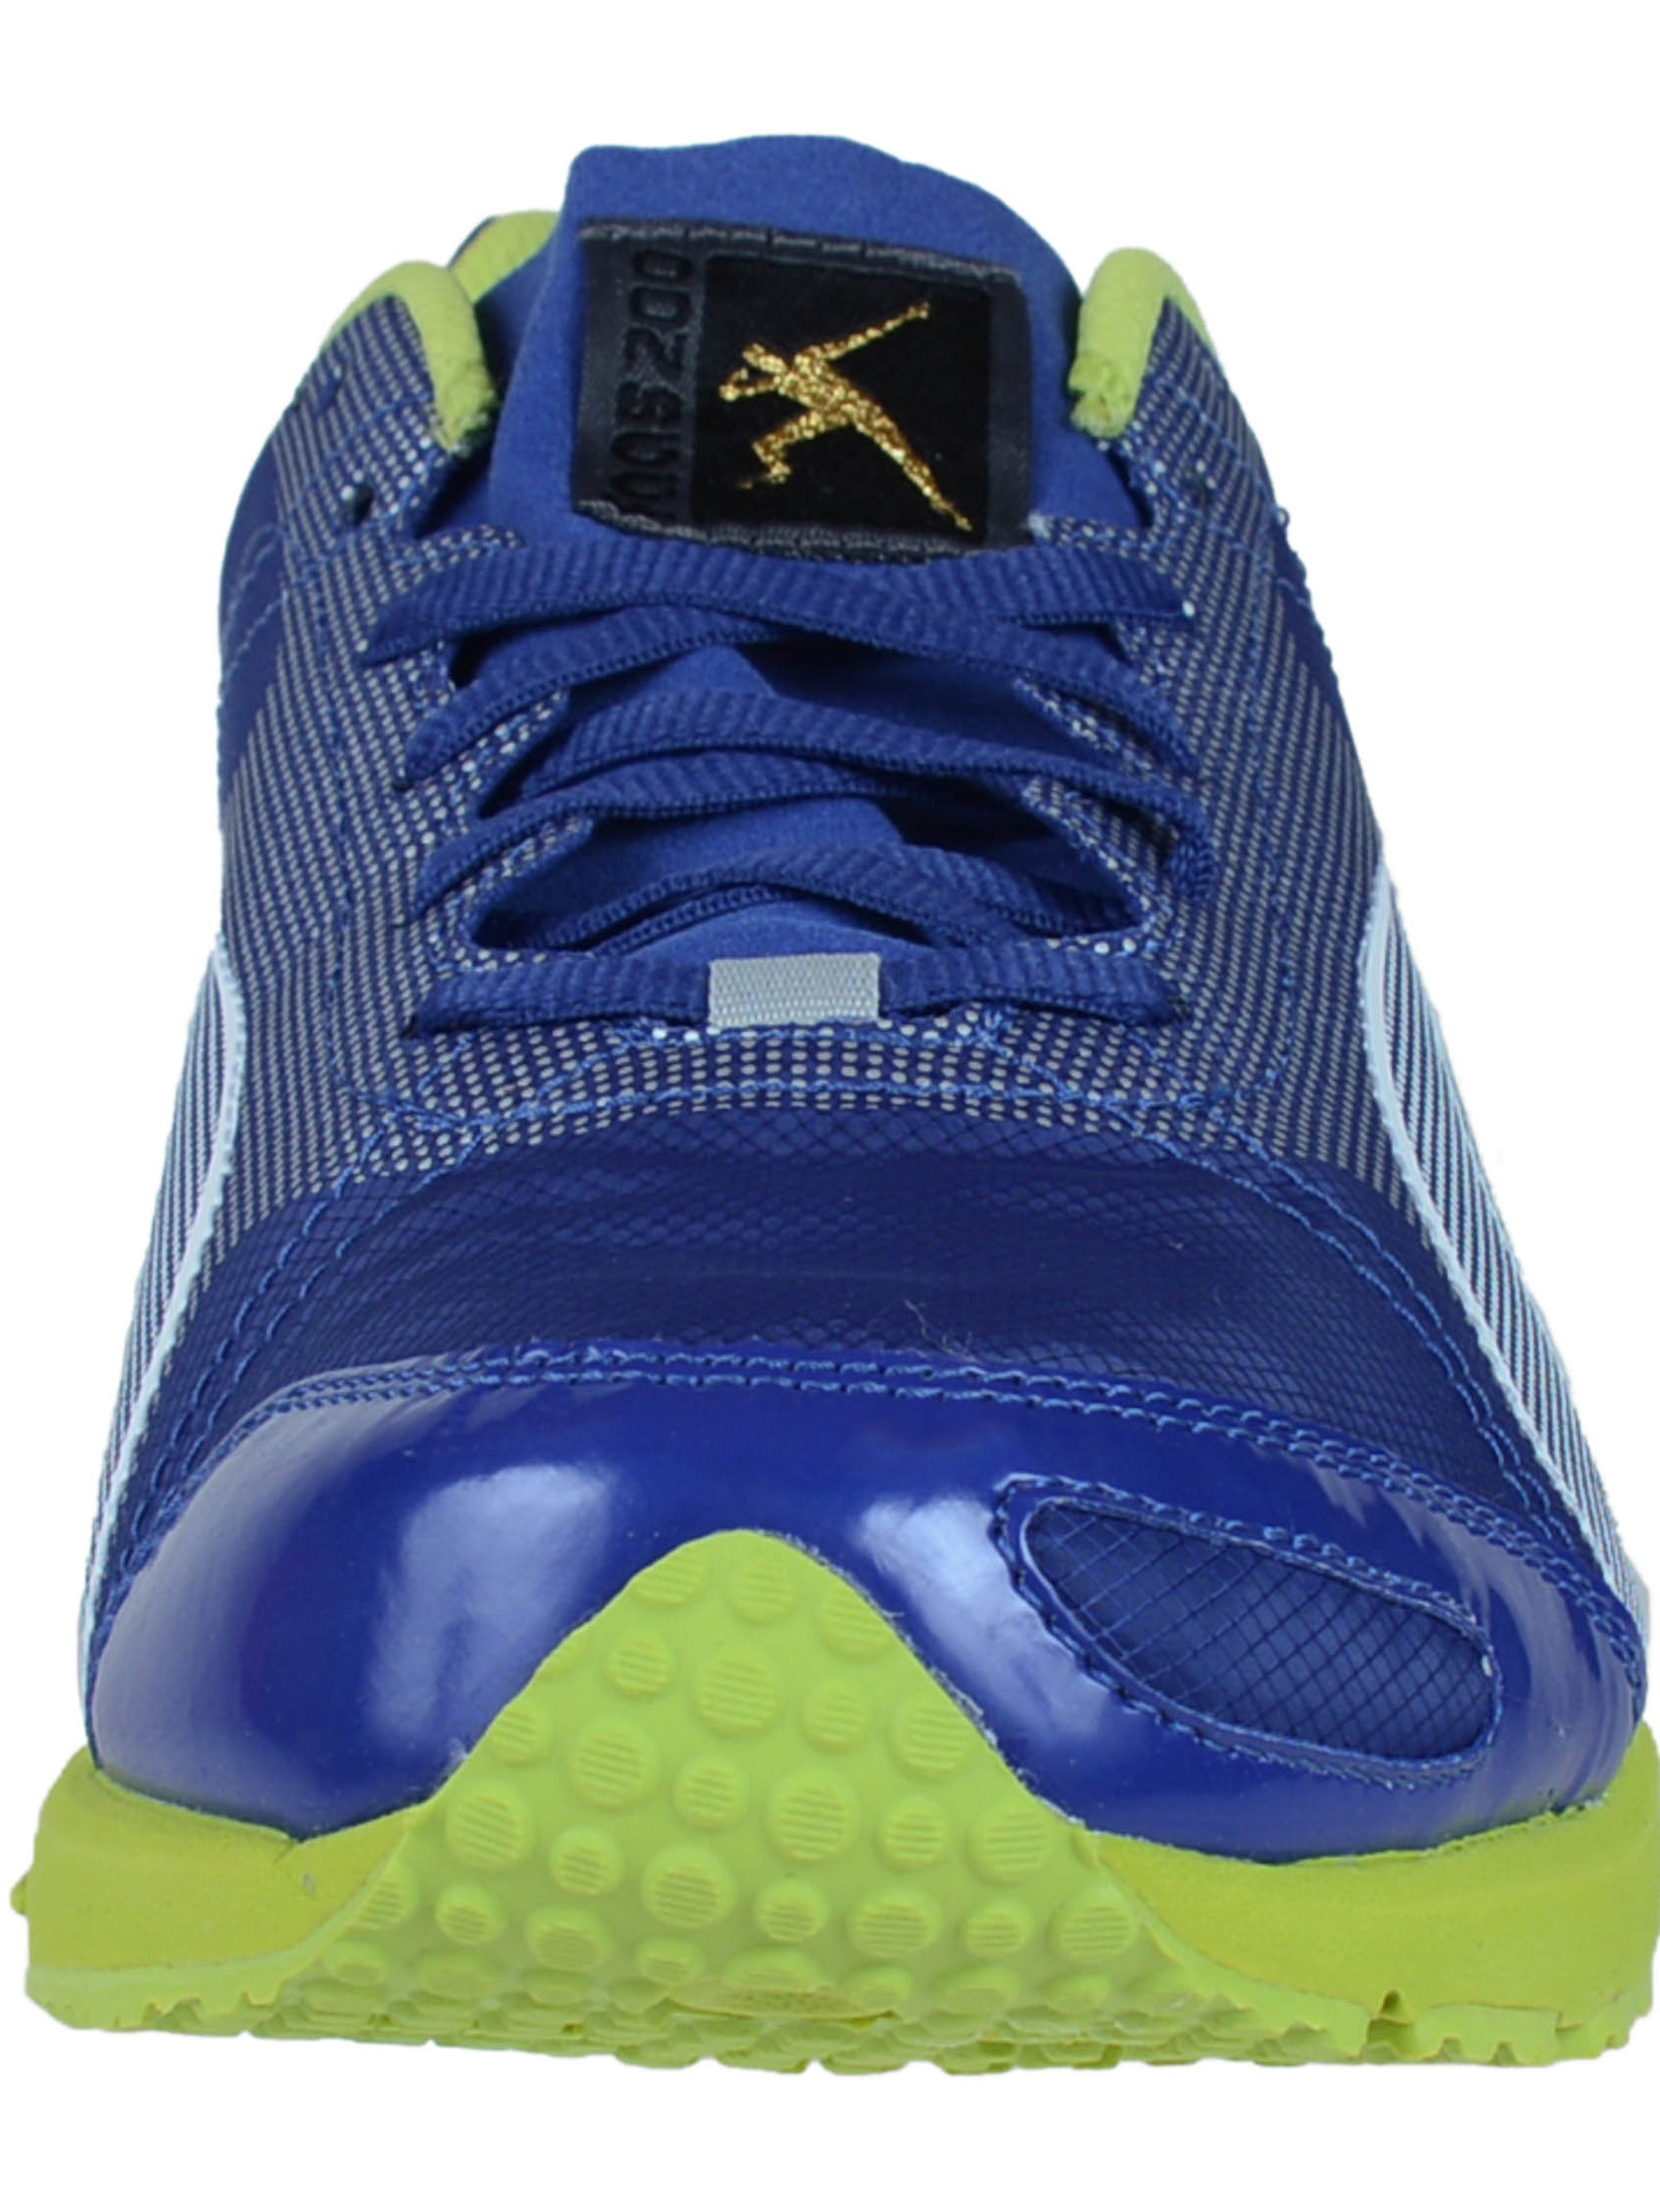 PUMA BOLT FAAS 200 RUNNING SHOES MAZARINE BLUE WHITE LIME PUNCH 185679 05